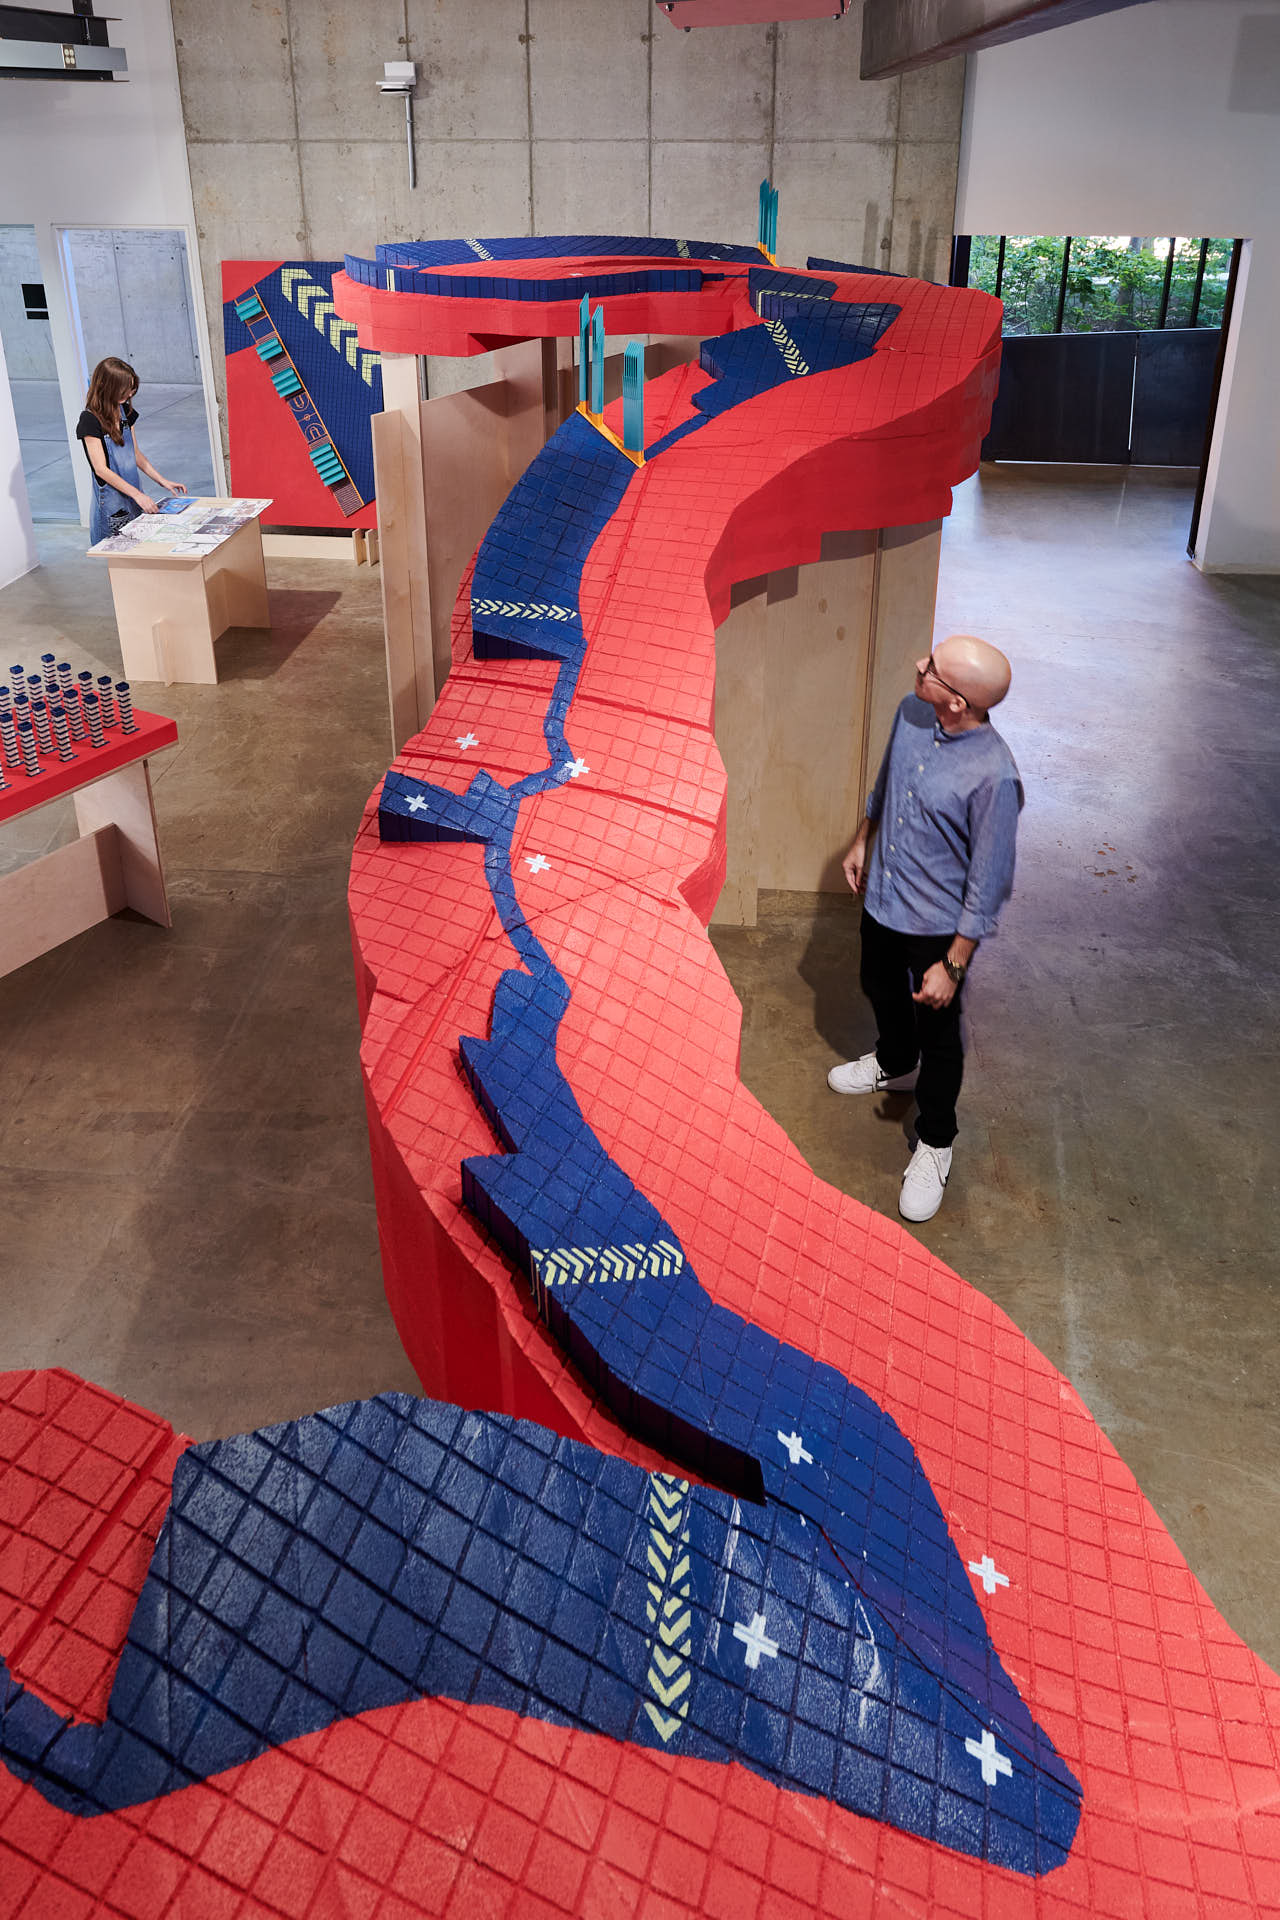 A long red and blue river installation with a man next to it